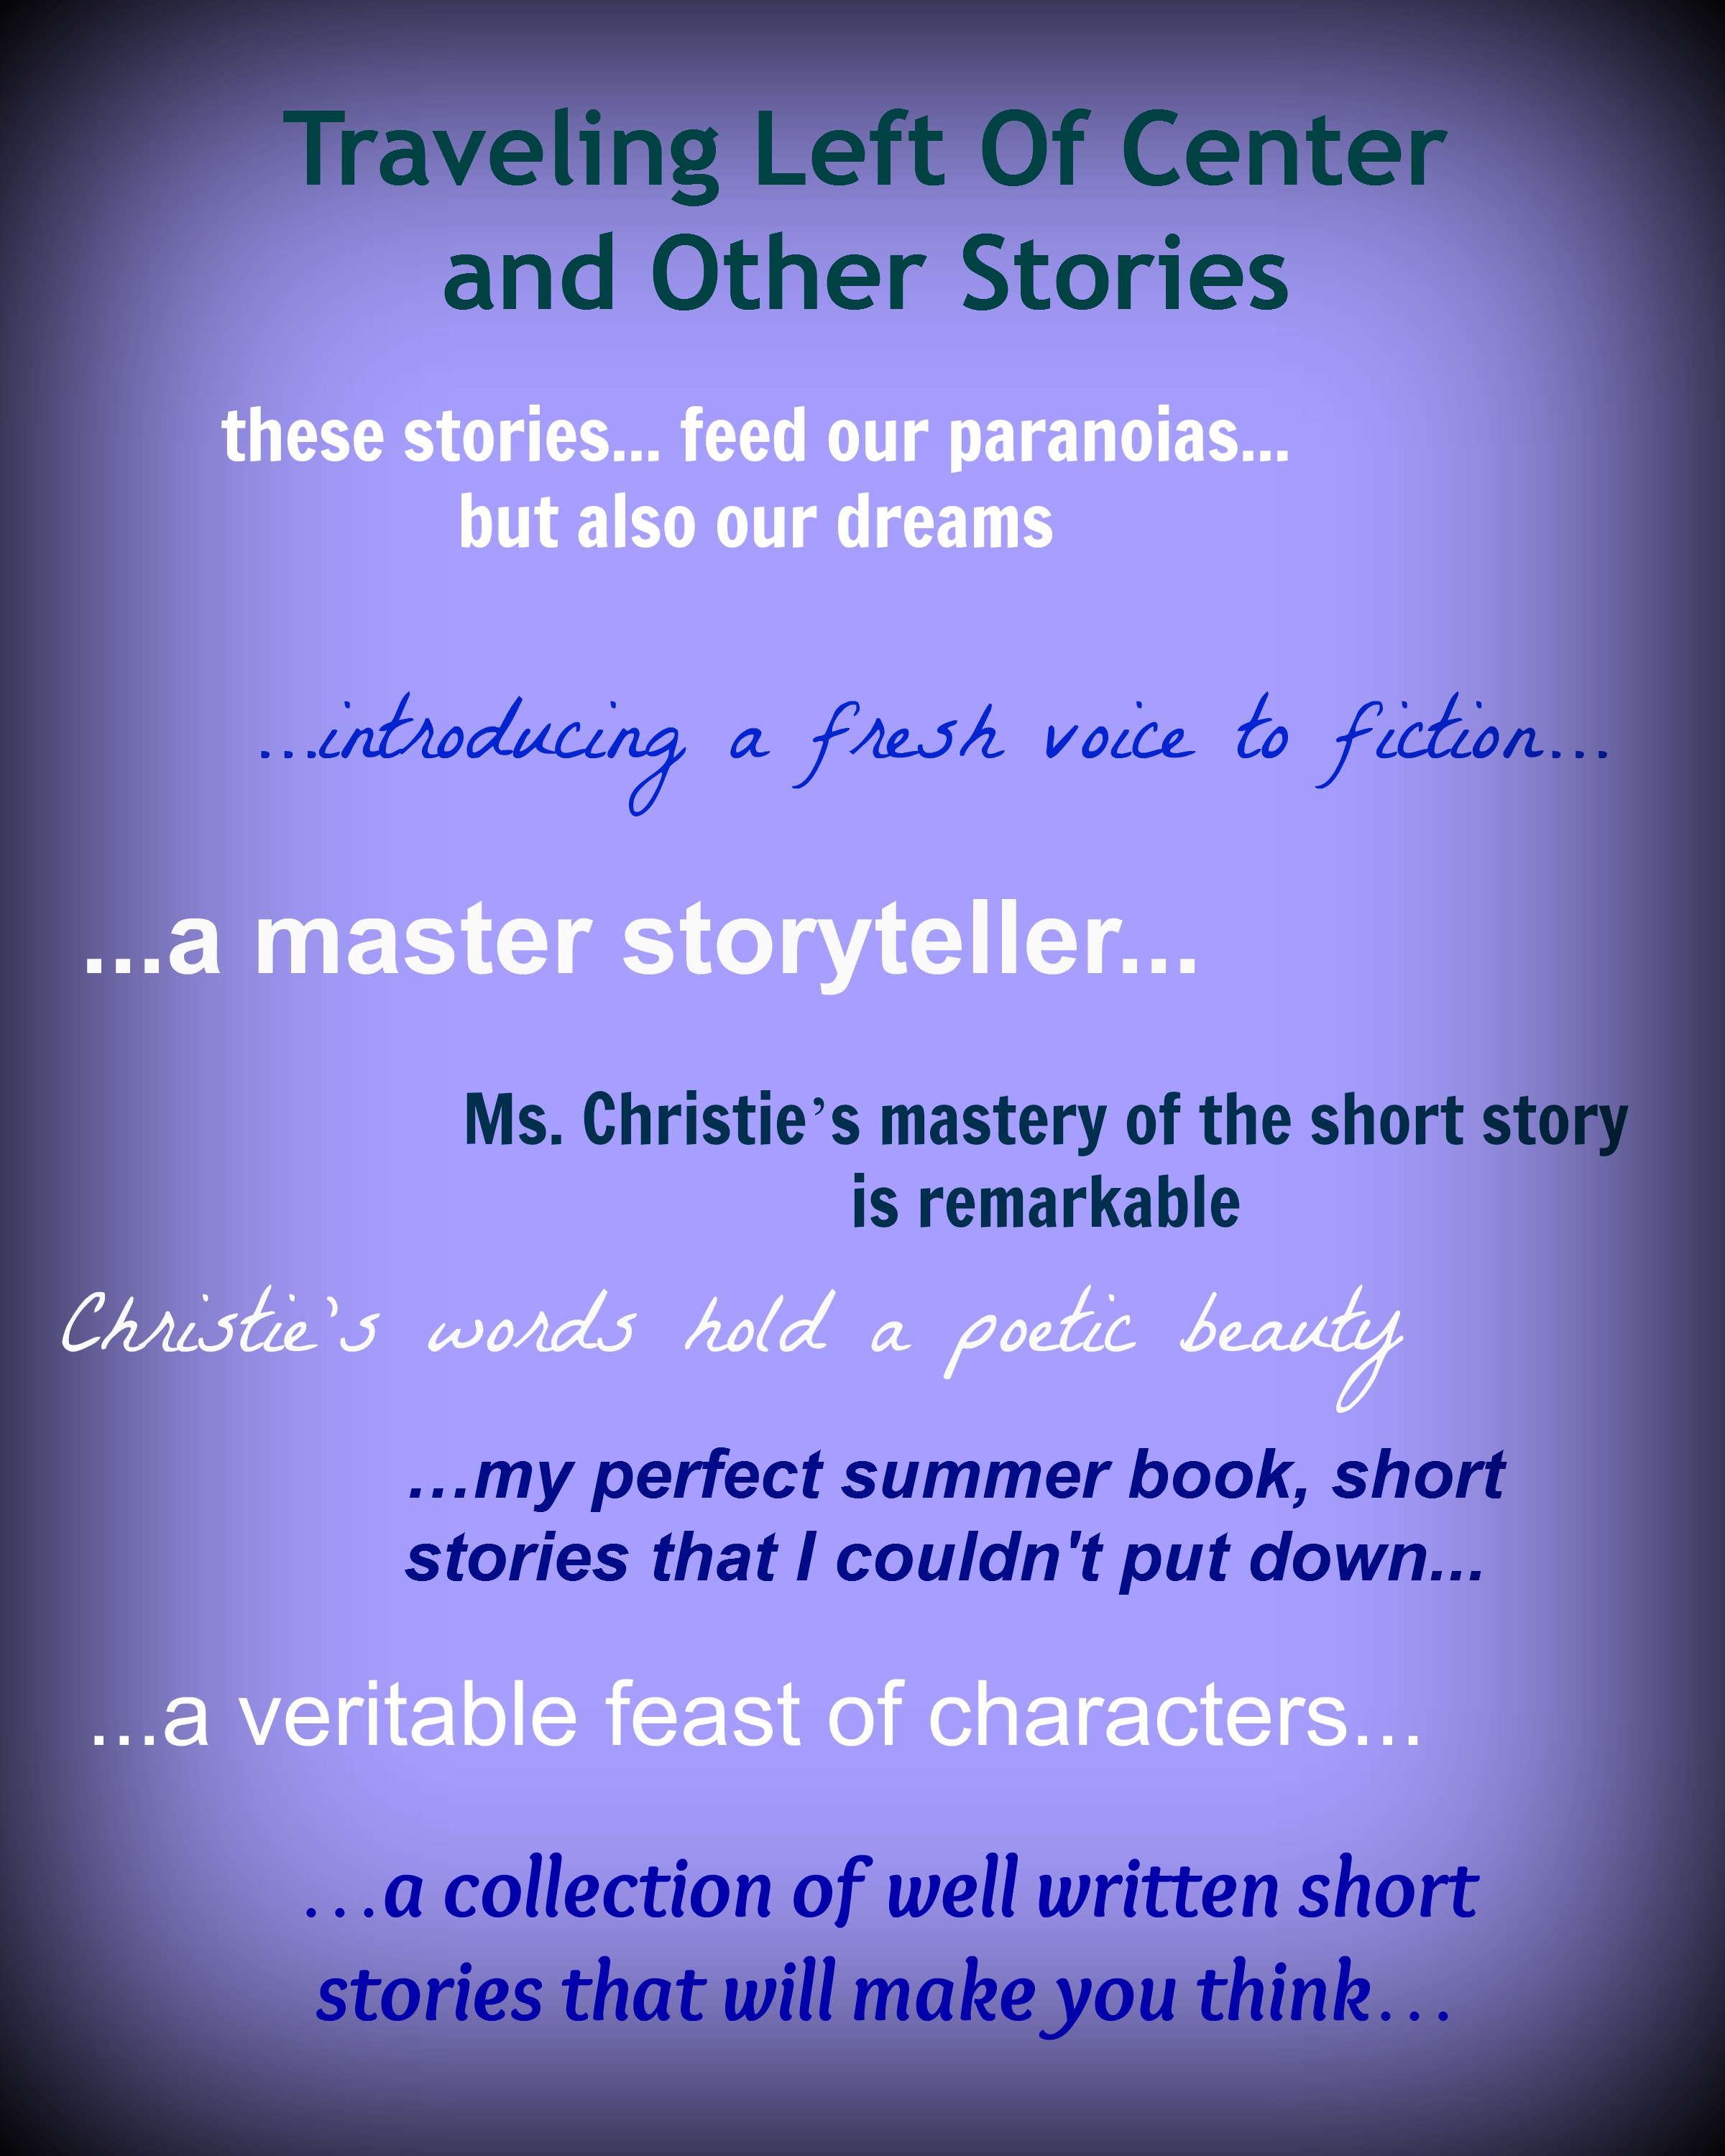 Short But Meaningful Quotes Traveling Left Of Center And Other Stories  Book Reviews  Nancy